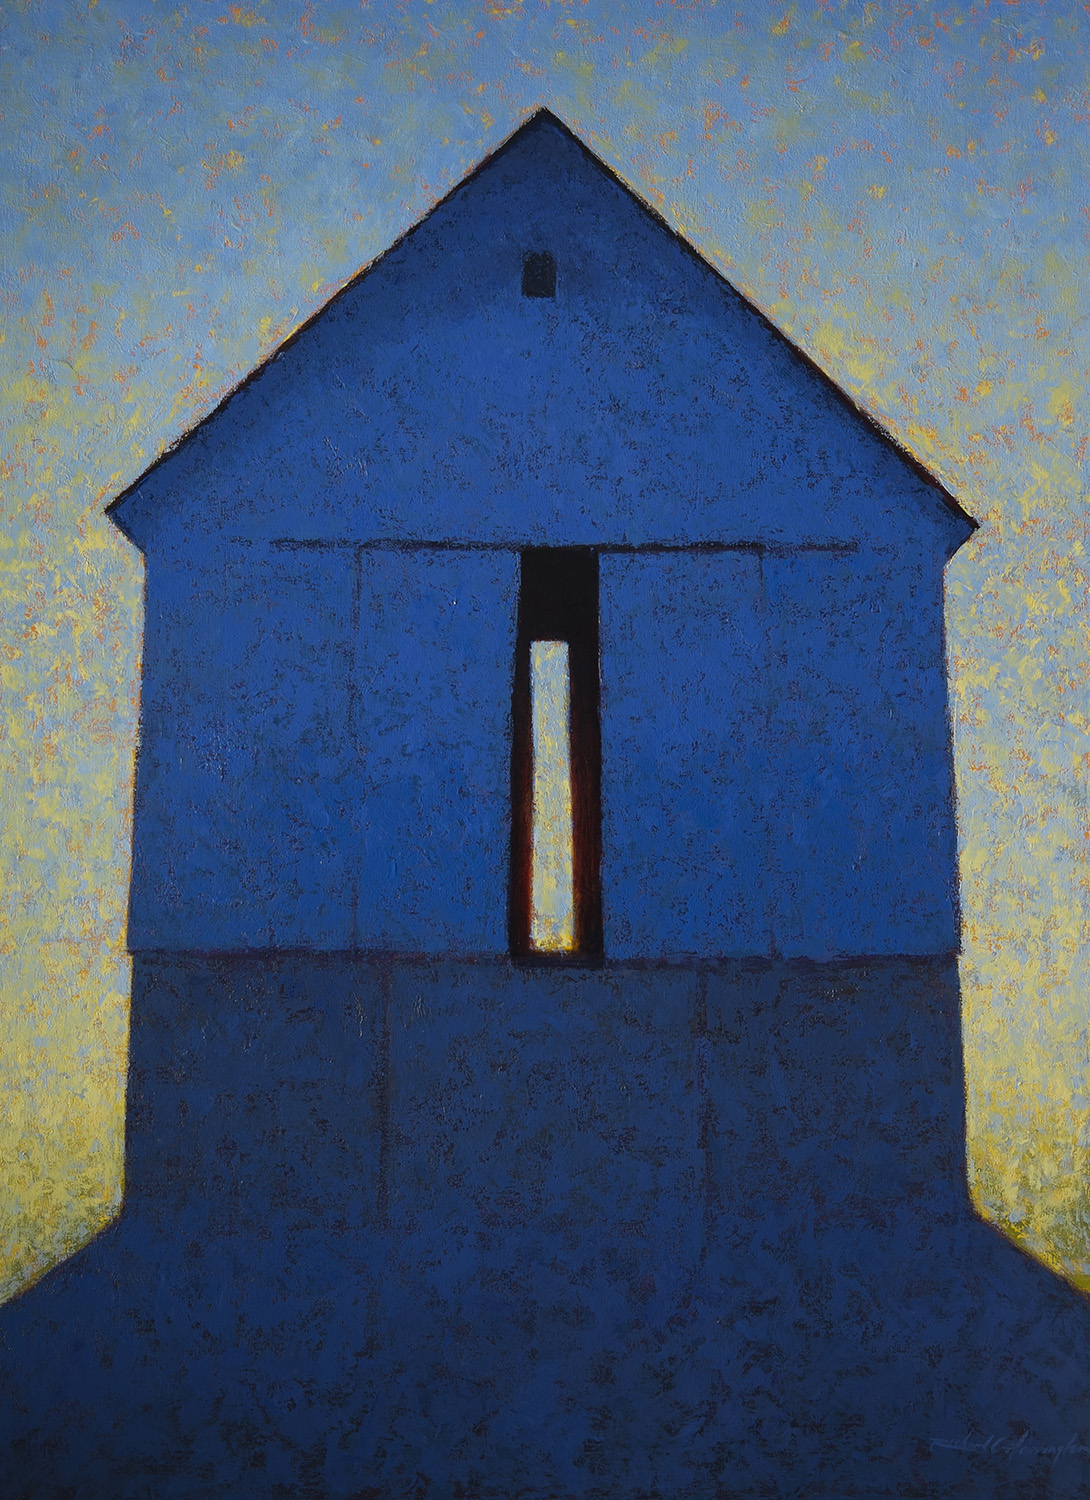 Lee's Barn, 66 x 48 inches, oil on canvas. Available through  Xanadu Gallery .